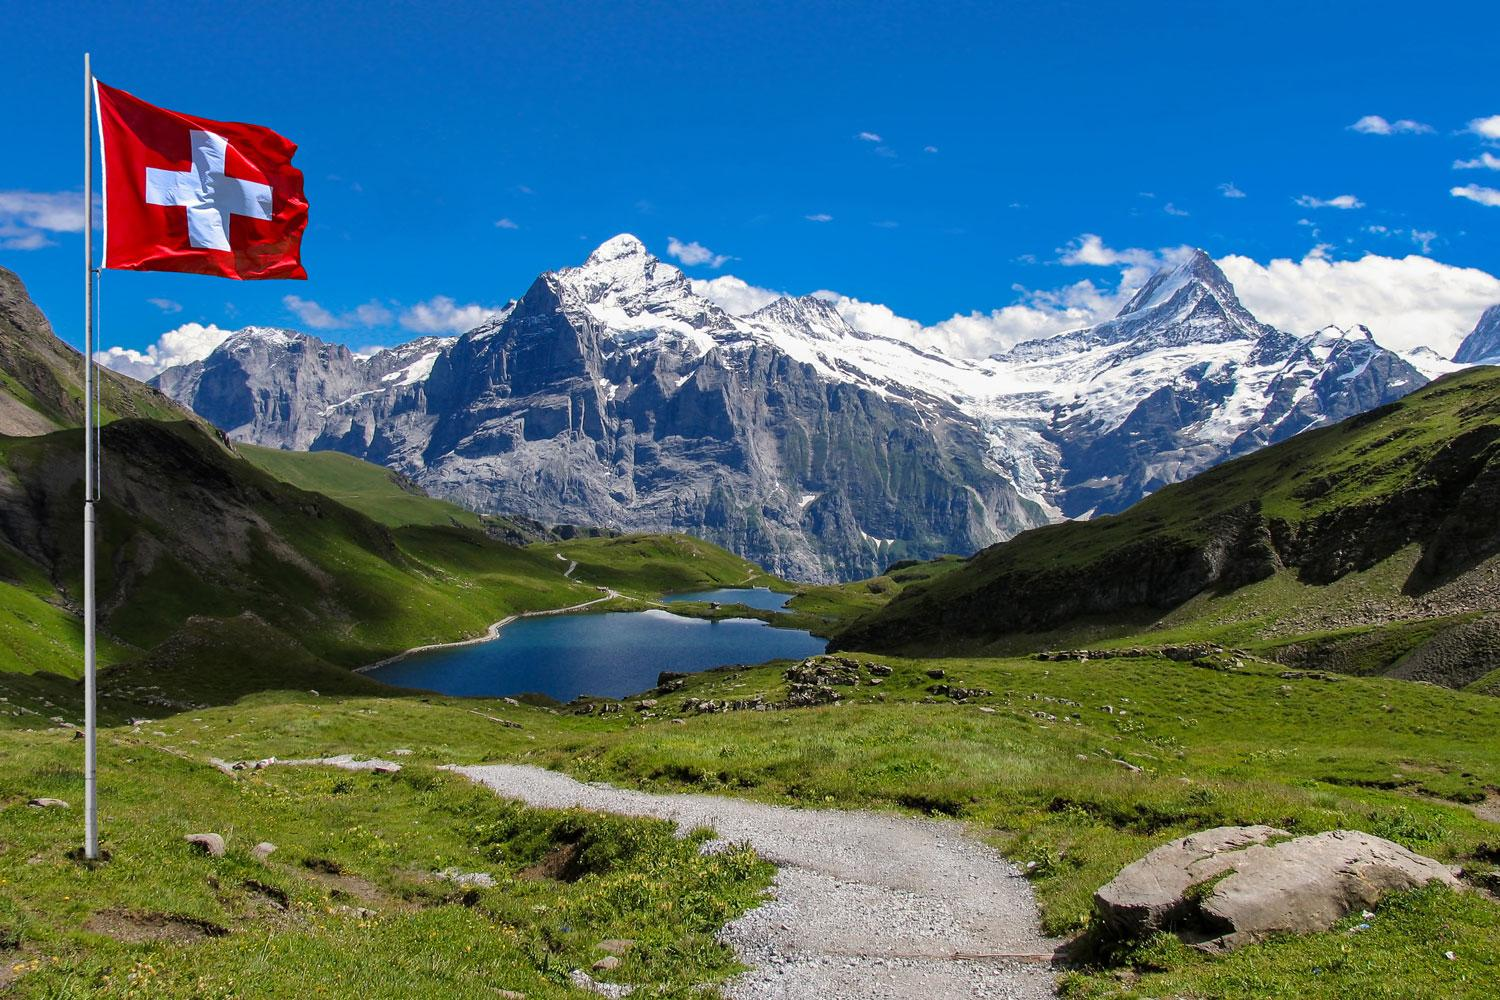 Self-guided flexible walking tour Best of the Bernese Oberland